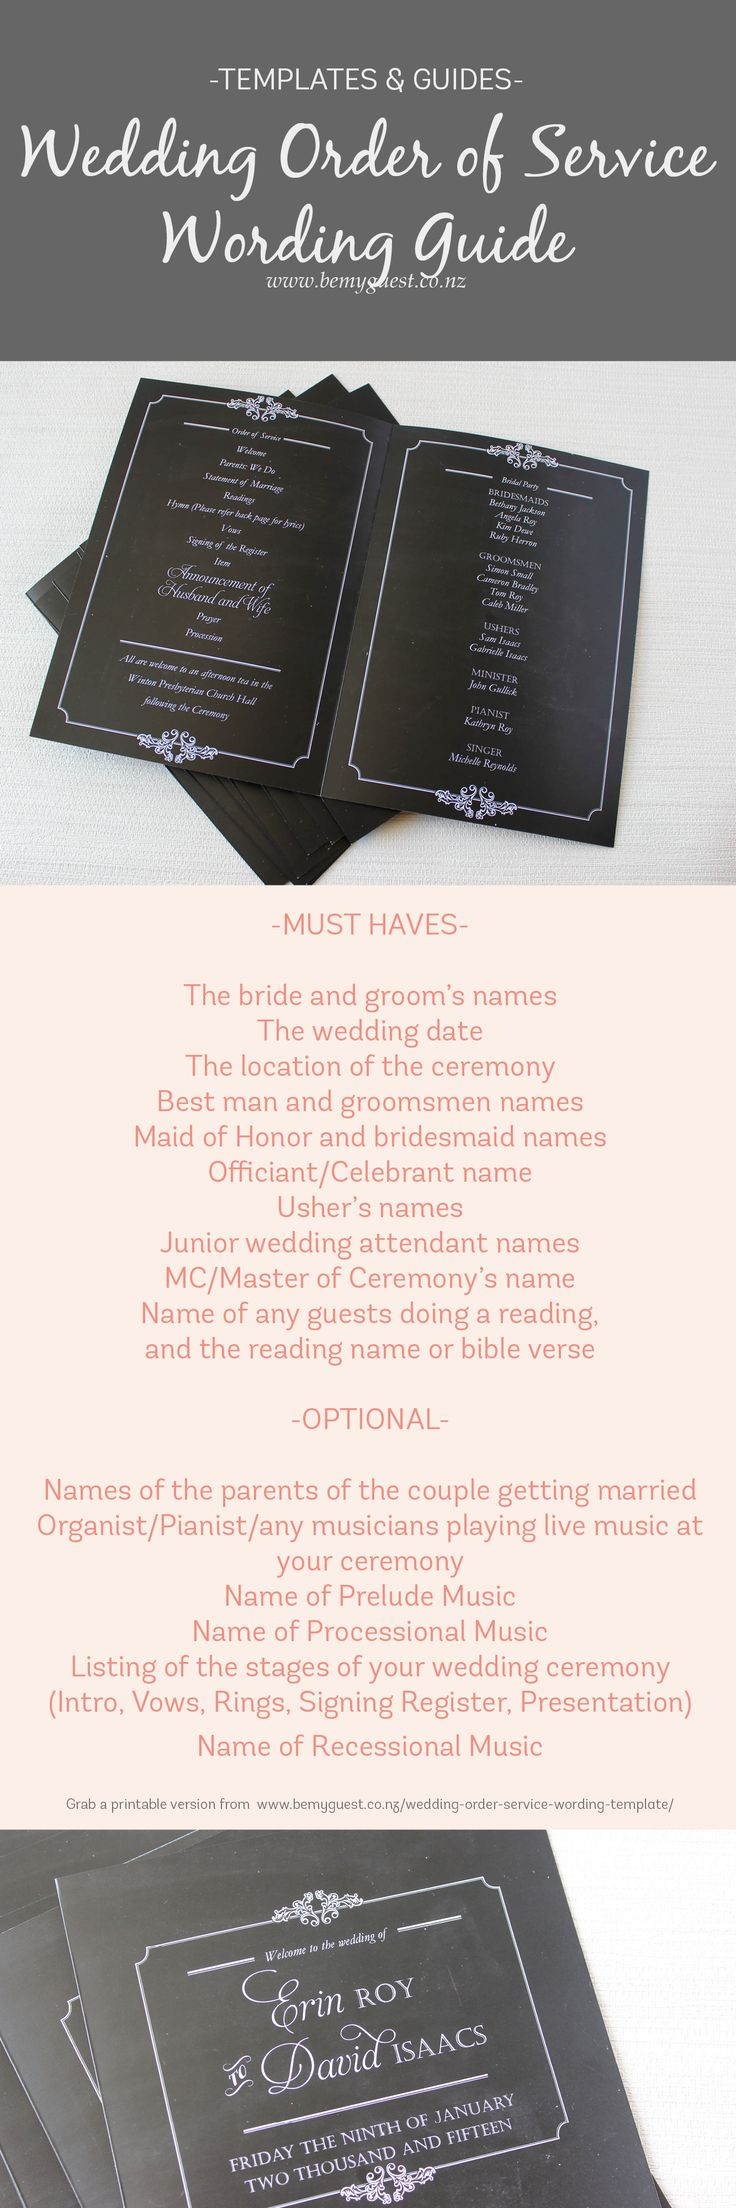 Order of Service Template Wording Template for a wedding - grab a printable template from http://www.southernbride.co.nz/wedding-order-service-wording-template/